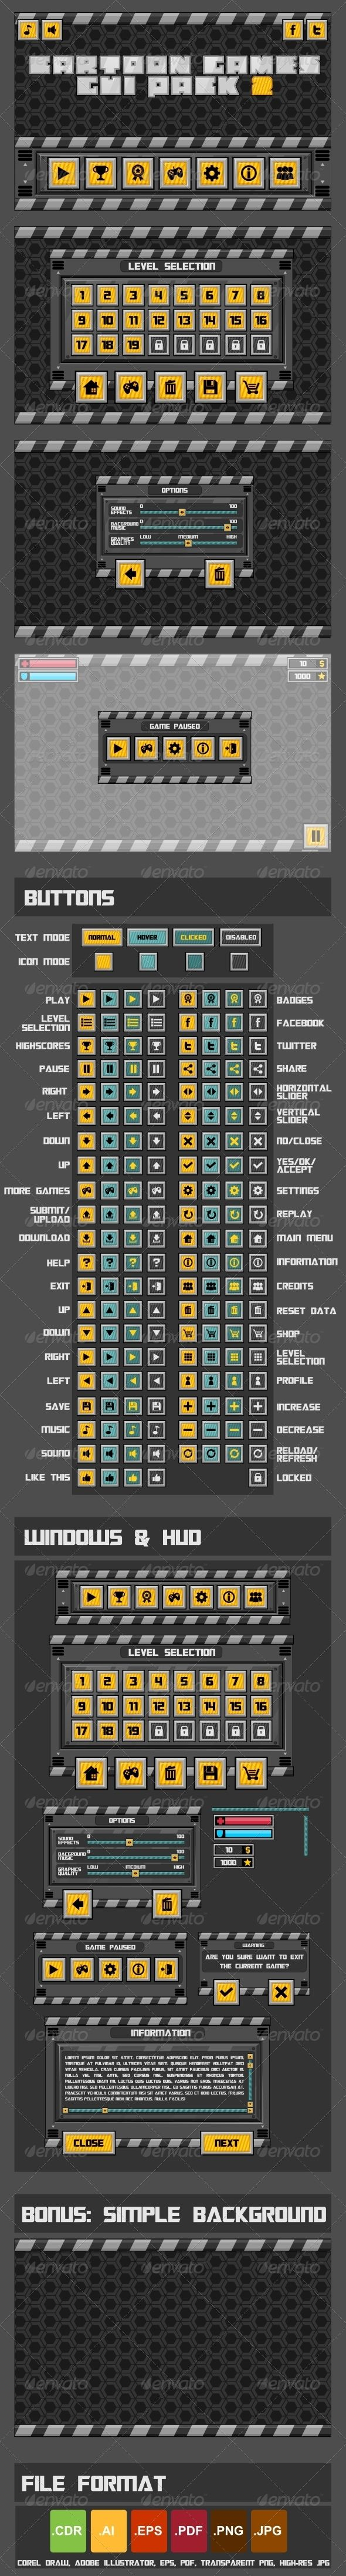 31 best images about 2D Game Assets on Pinterest | Graphics, 2d ...